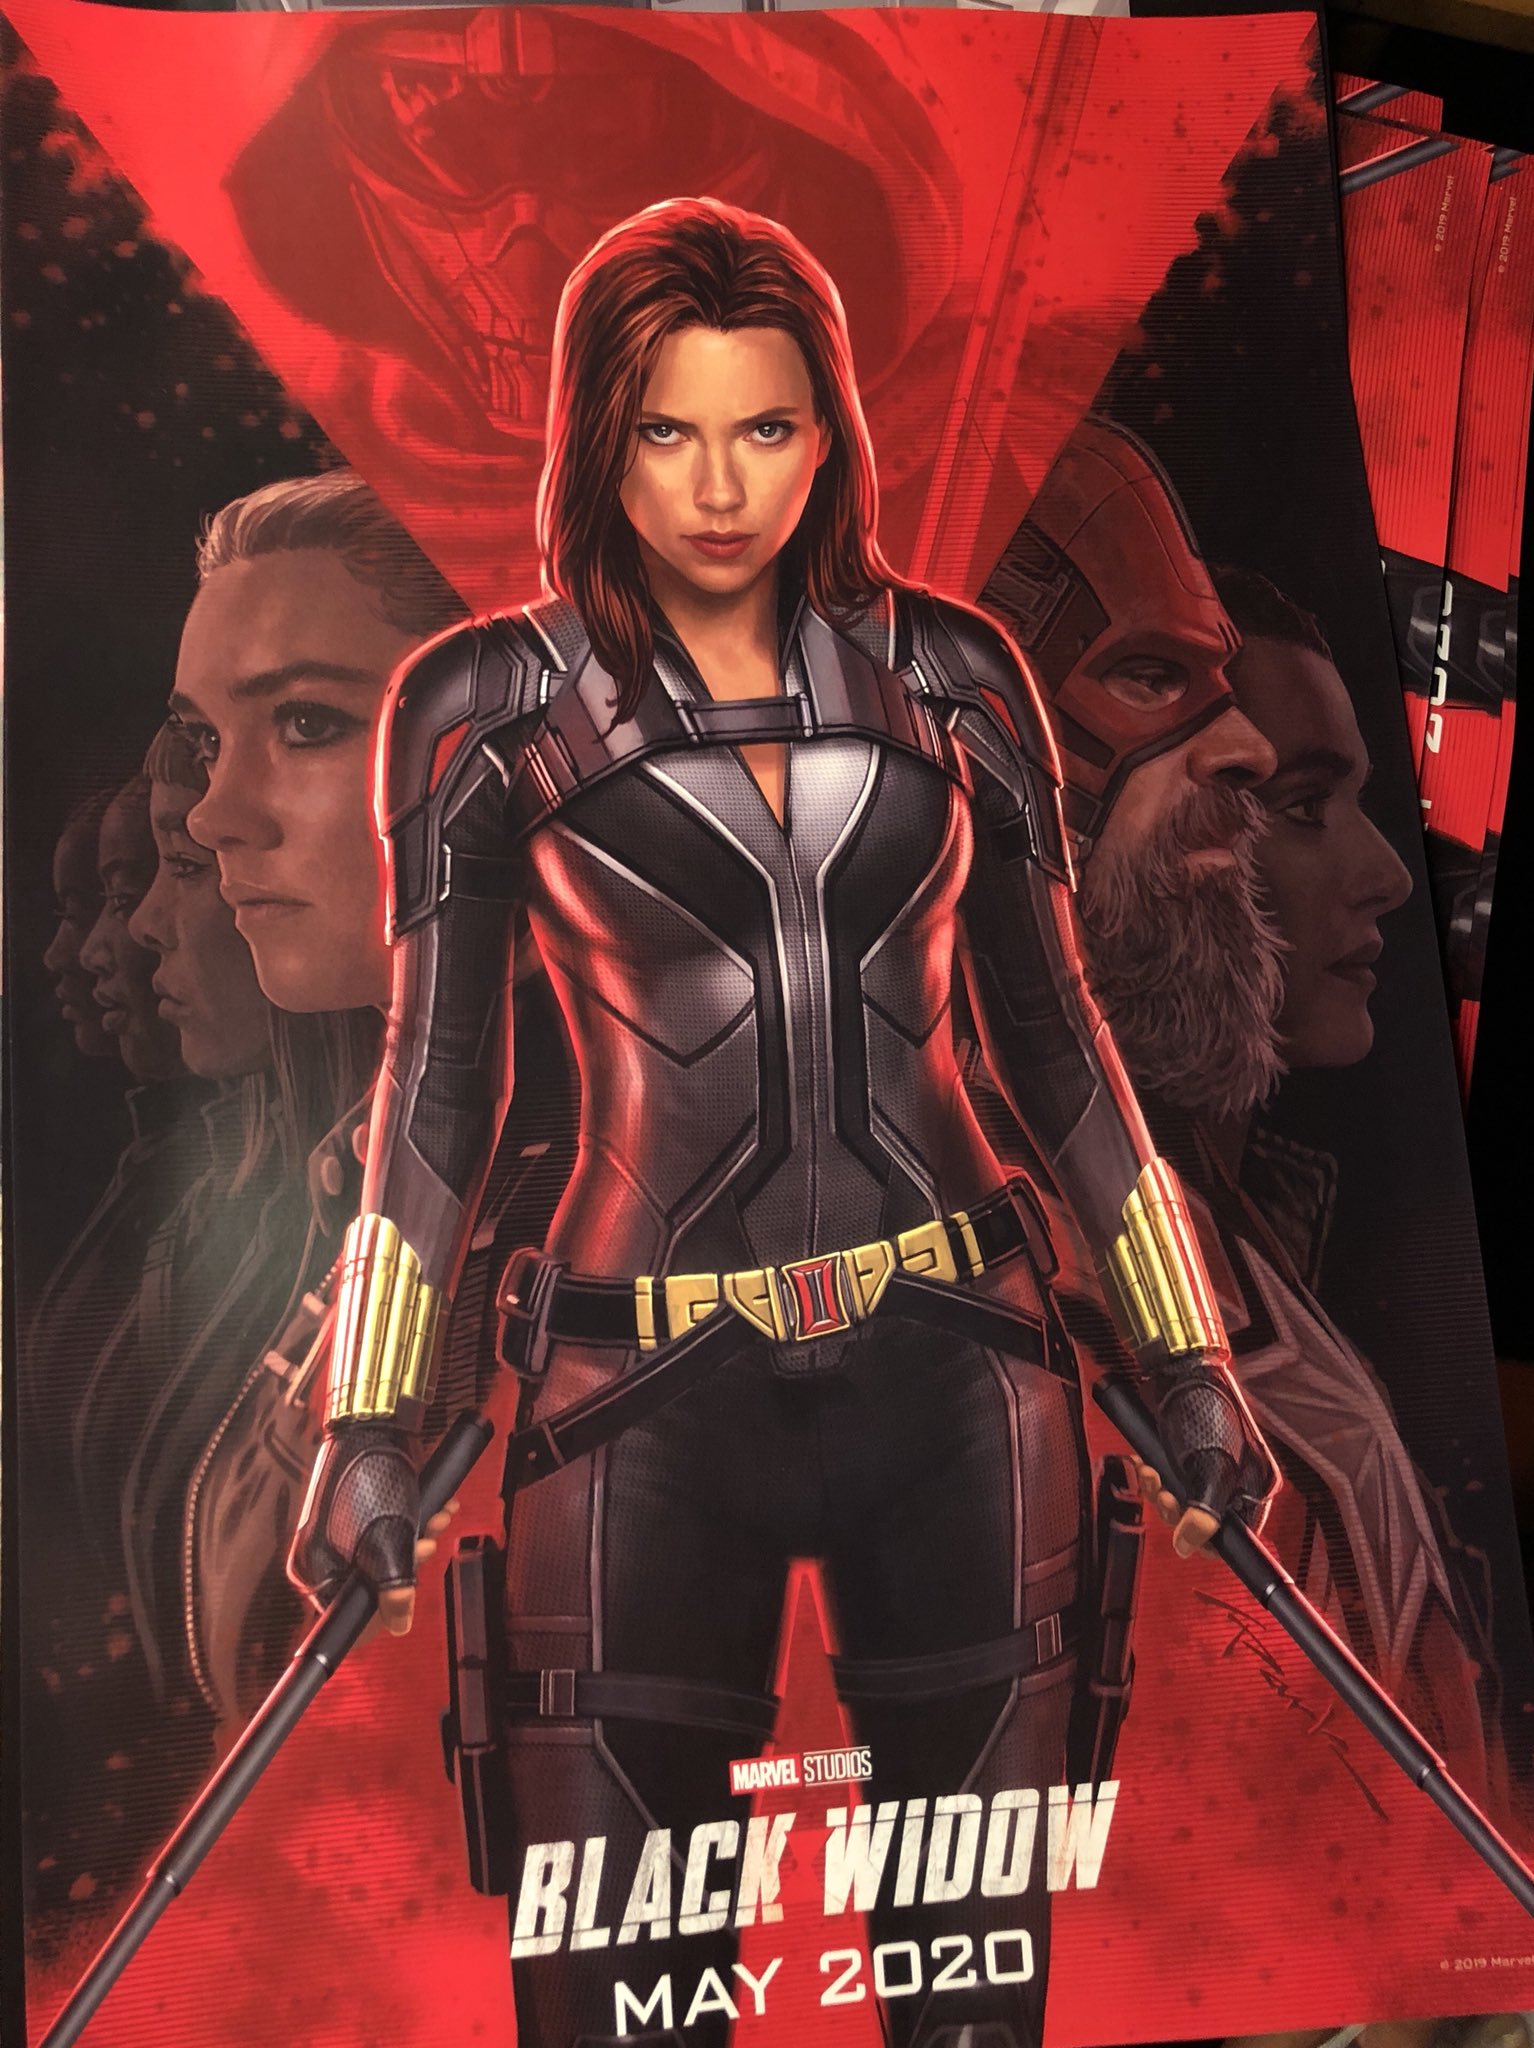 Black-Widow-poster-andy-park